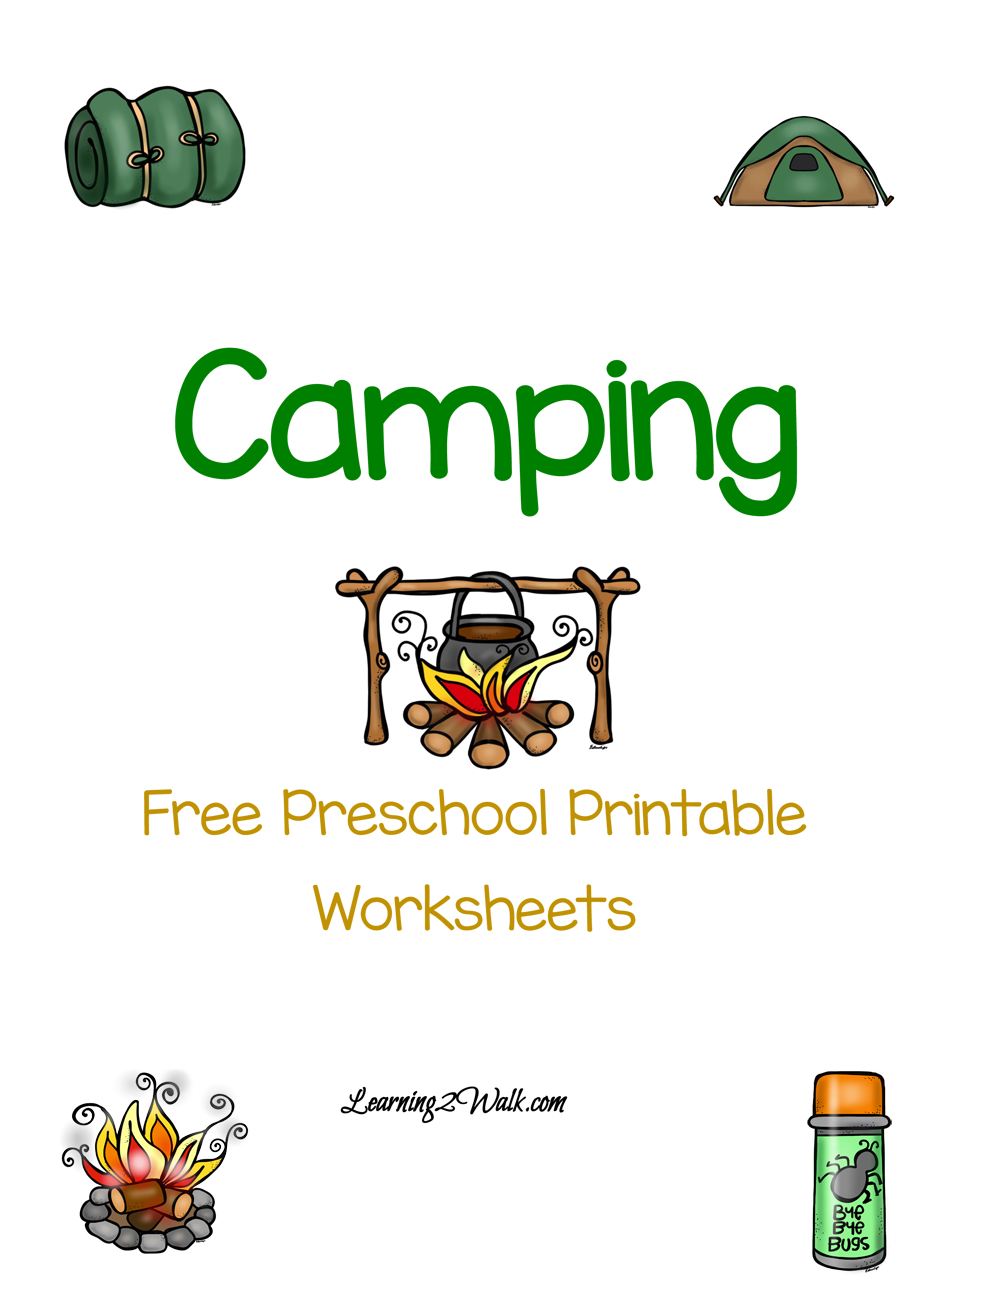 Looking for a for a fun camping printable for your preschoolers try these free preschool printable worksheets that is dedicated to camping